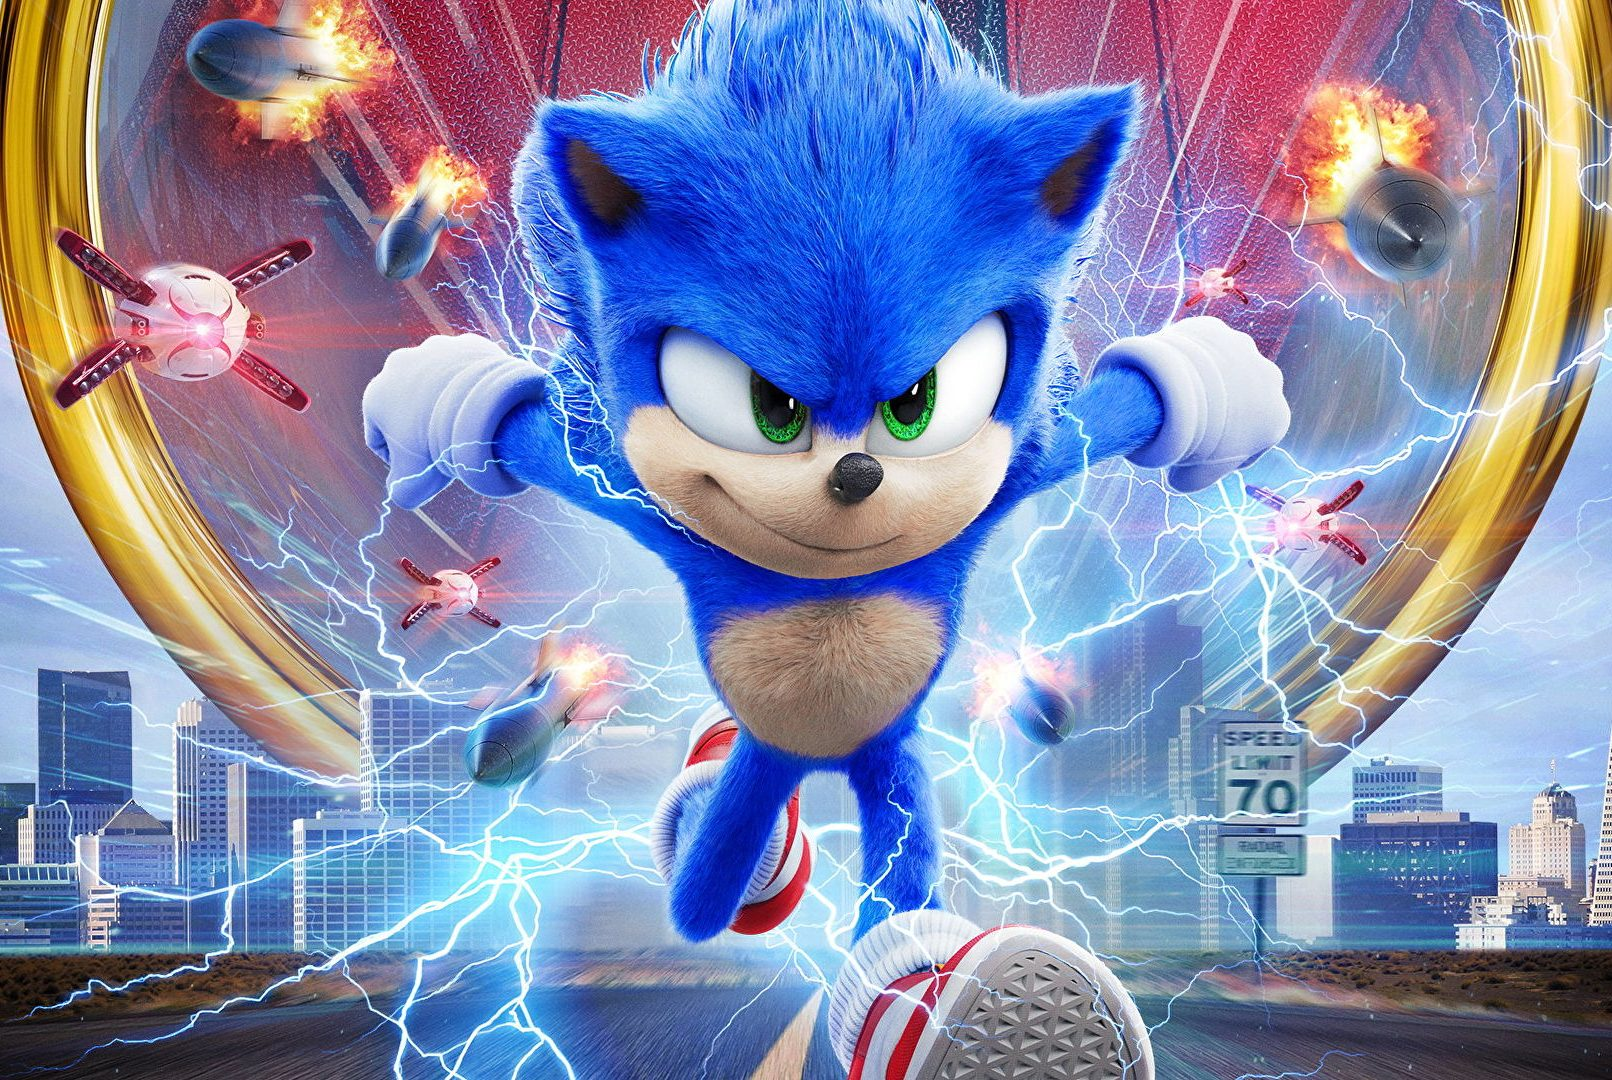 sonic the hedgehog movie poster e1624527878301 Sega Planning A Sonic The Hedgehog Theme Park, Reports Suggest